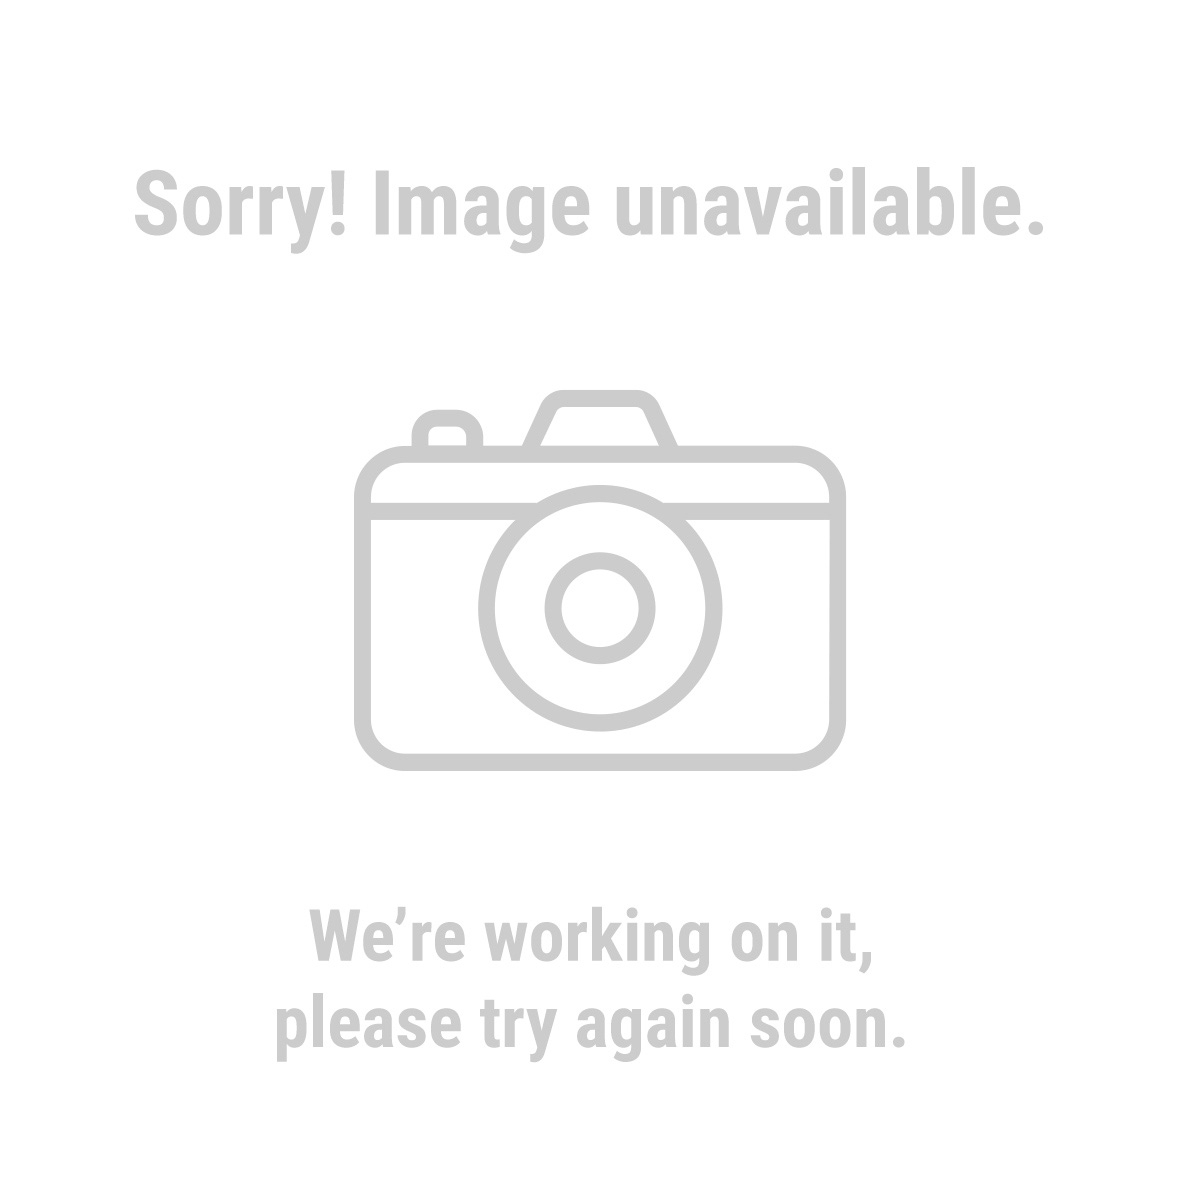 Central Pneumatic 61718 1/2 in. Air Impact Wrench